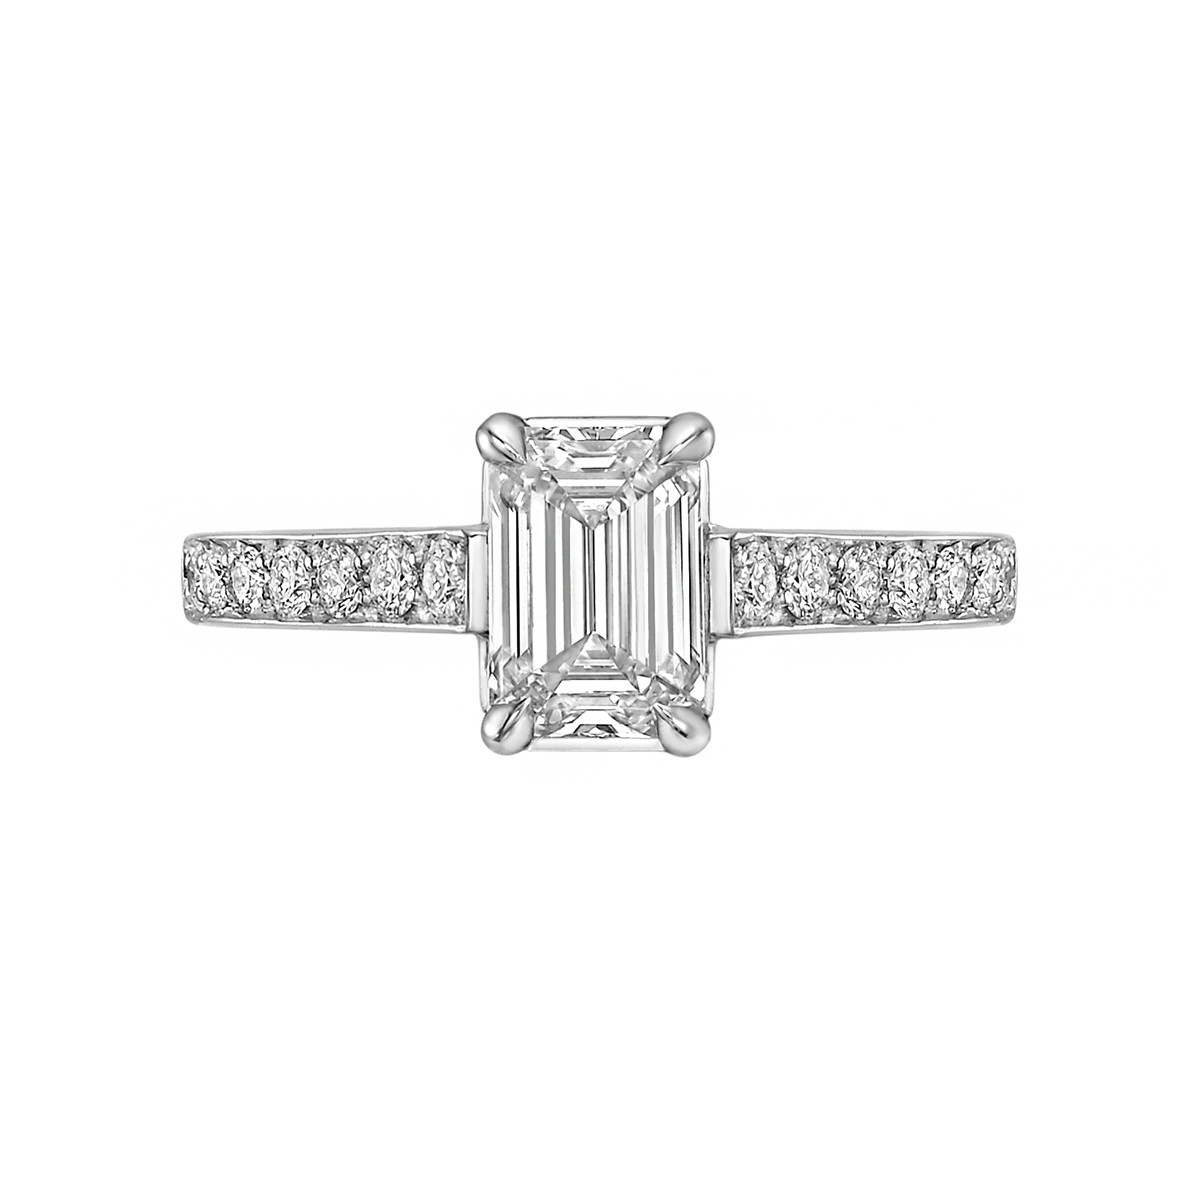 1.01ct Colorless Emerald-Cut Diamond Ring